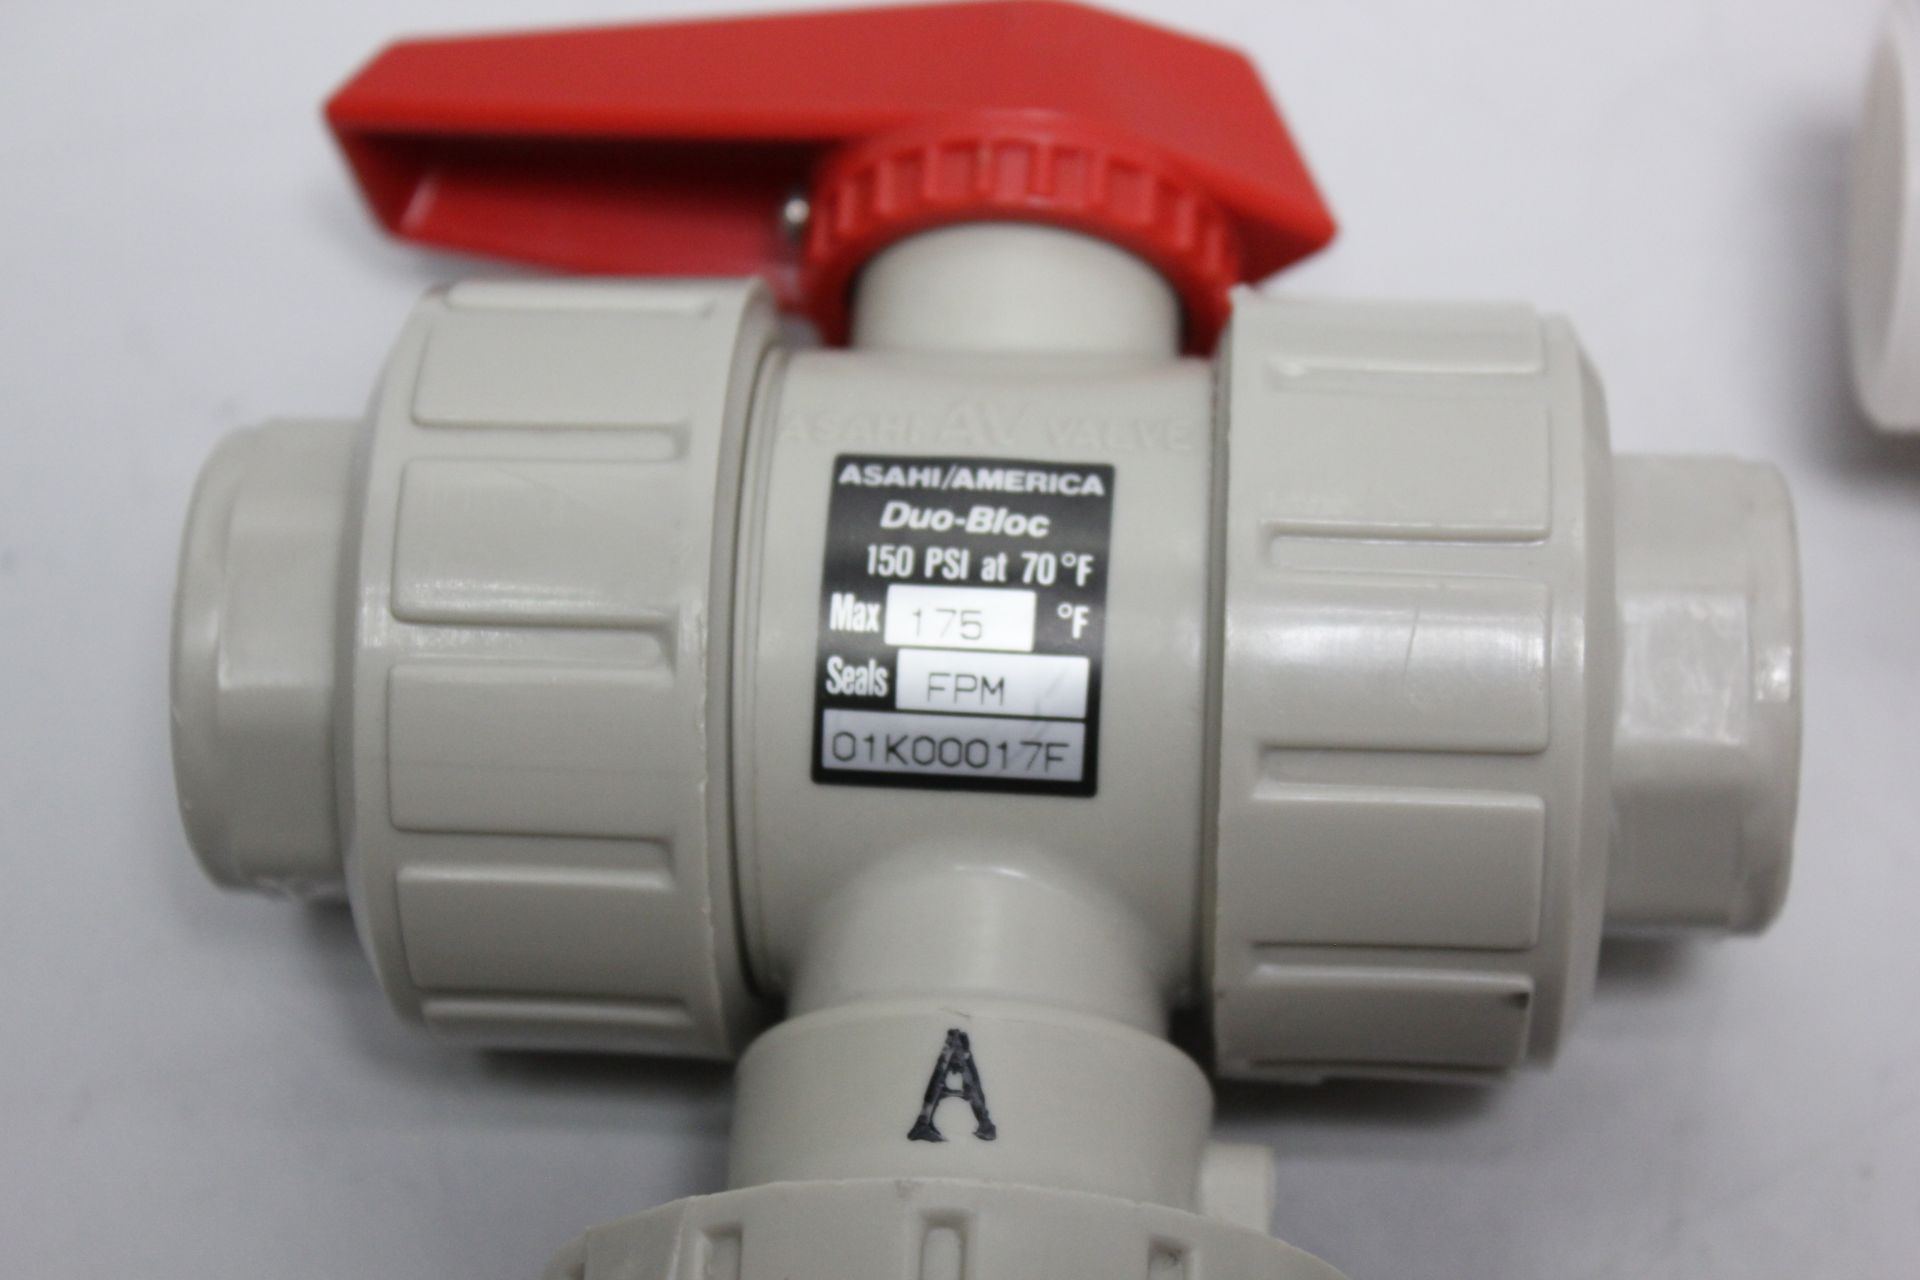 LOT OF UNUSED ASAHI BALL VALVES - Image 2 of 5